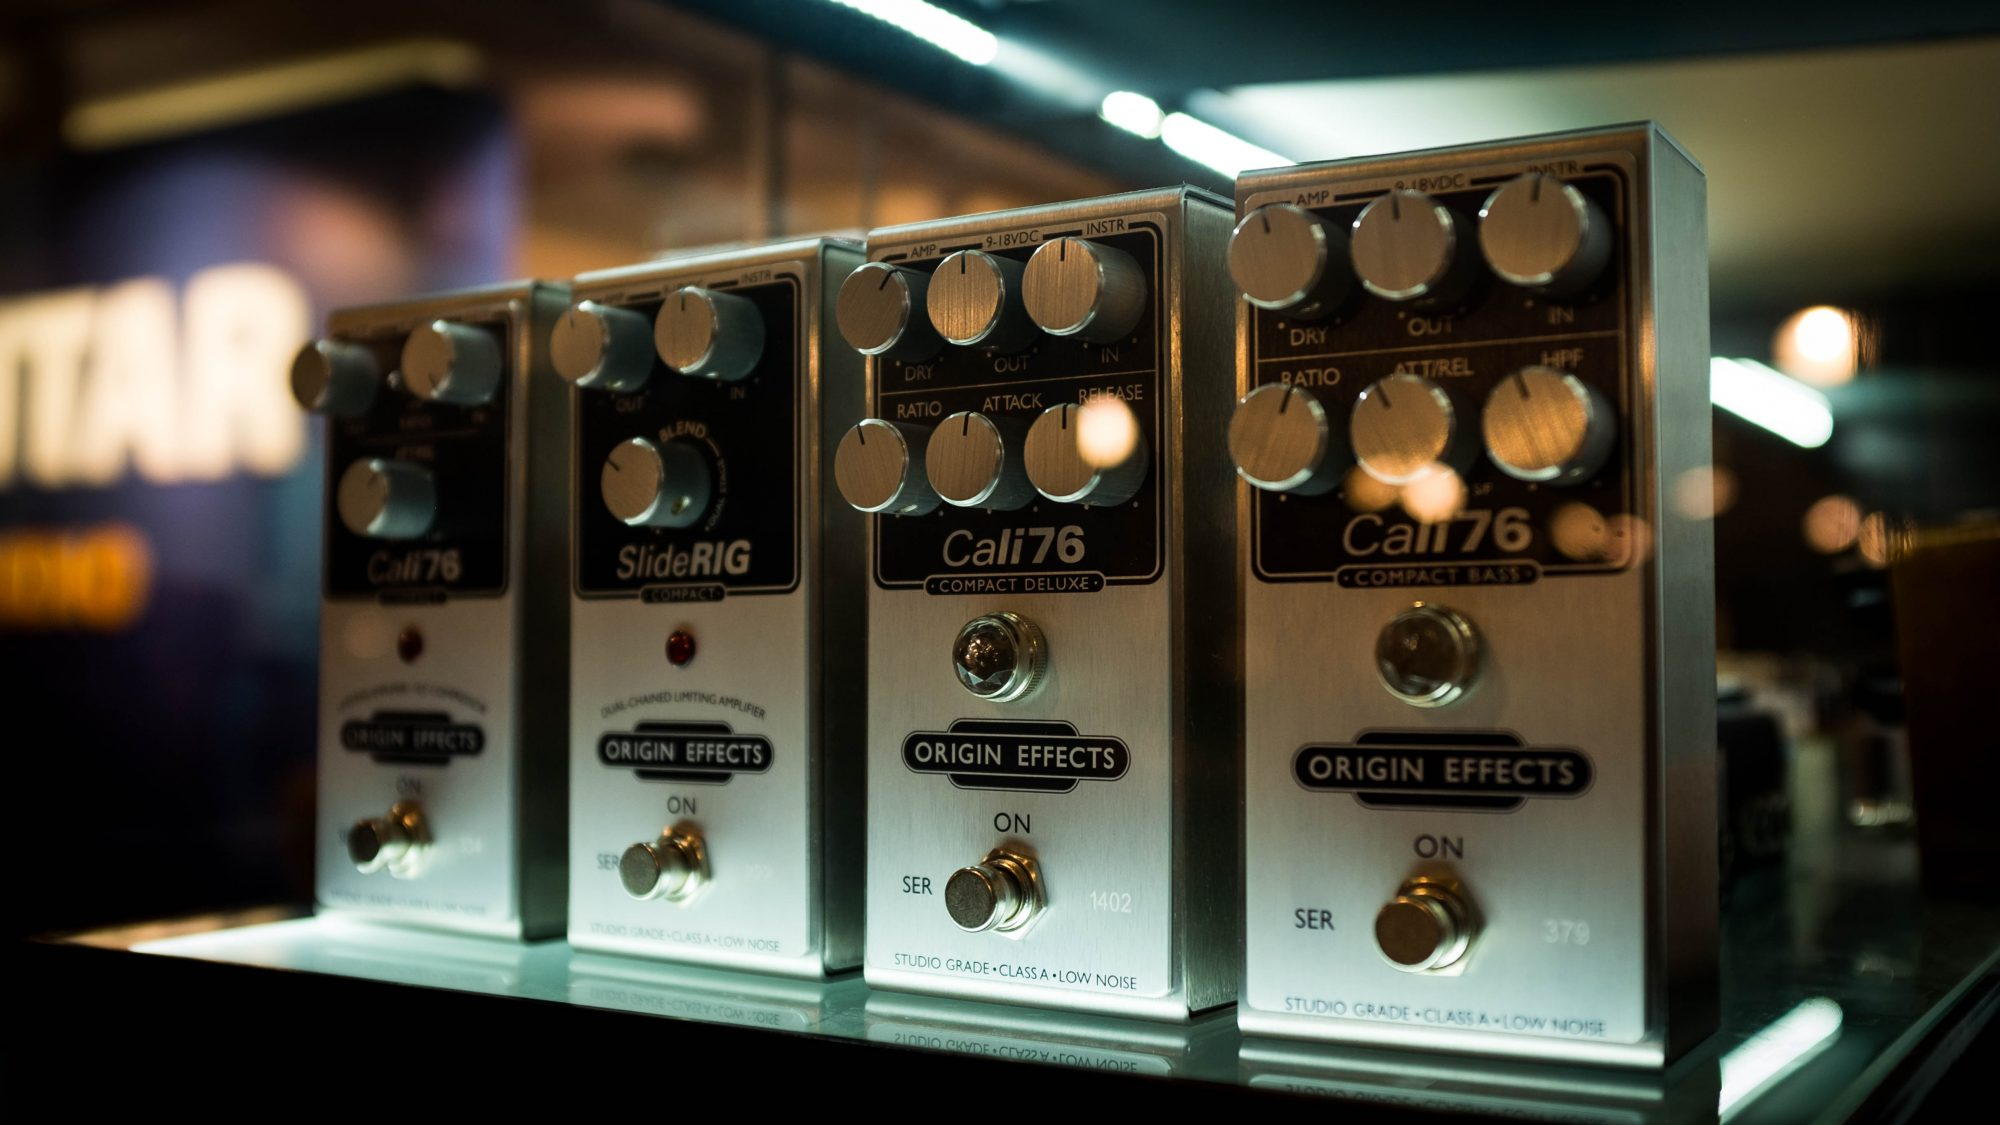 Andertons Stock of Origin Effects Compact analogue compressor pedals Urei 1176 boutique in a stompbox